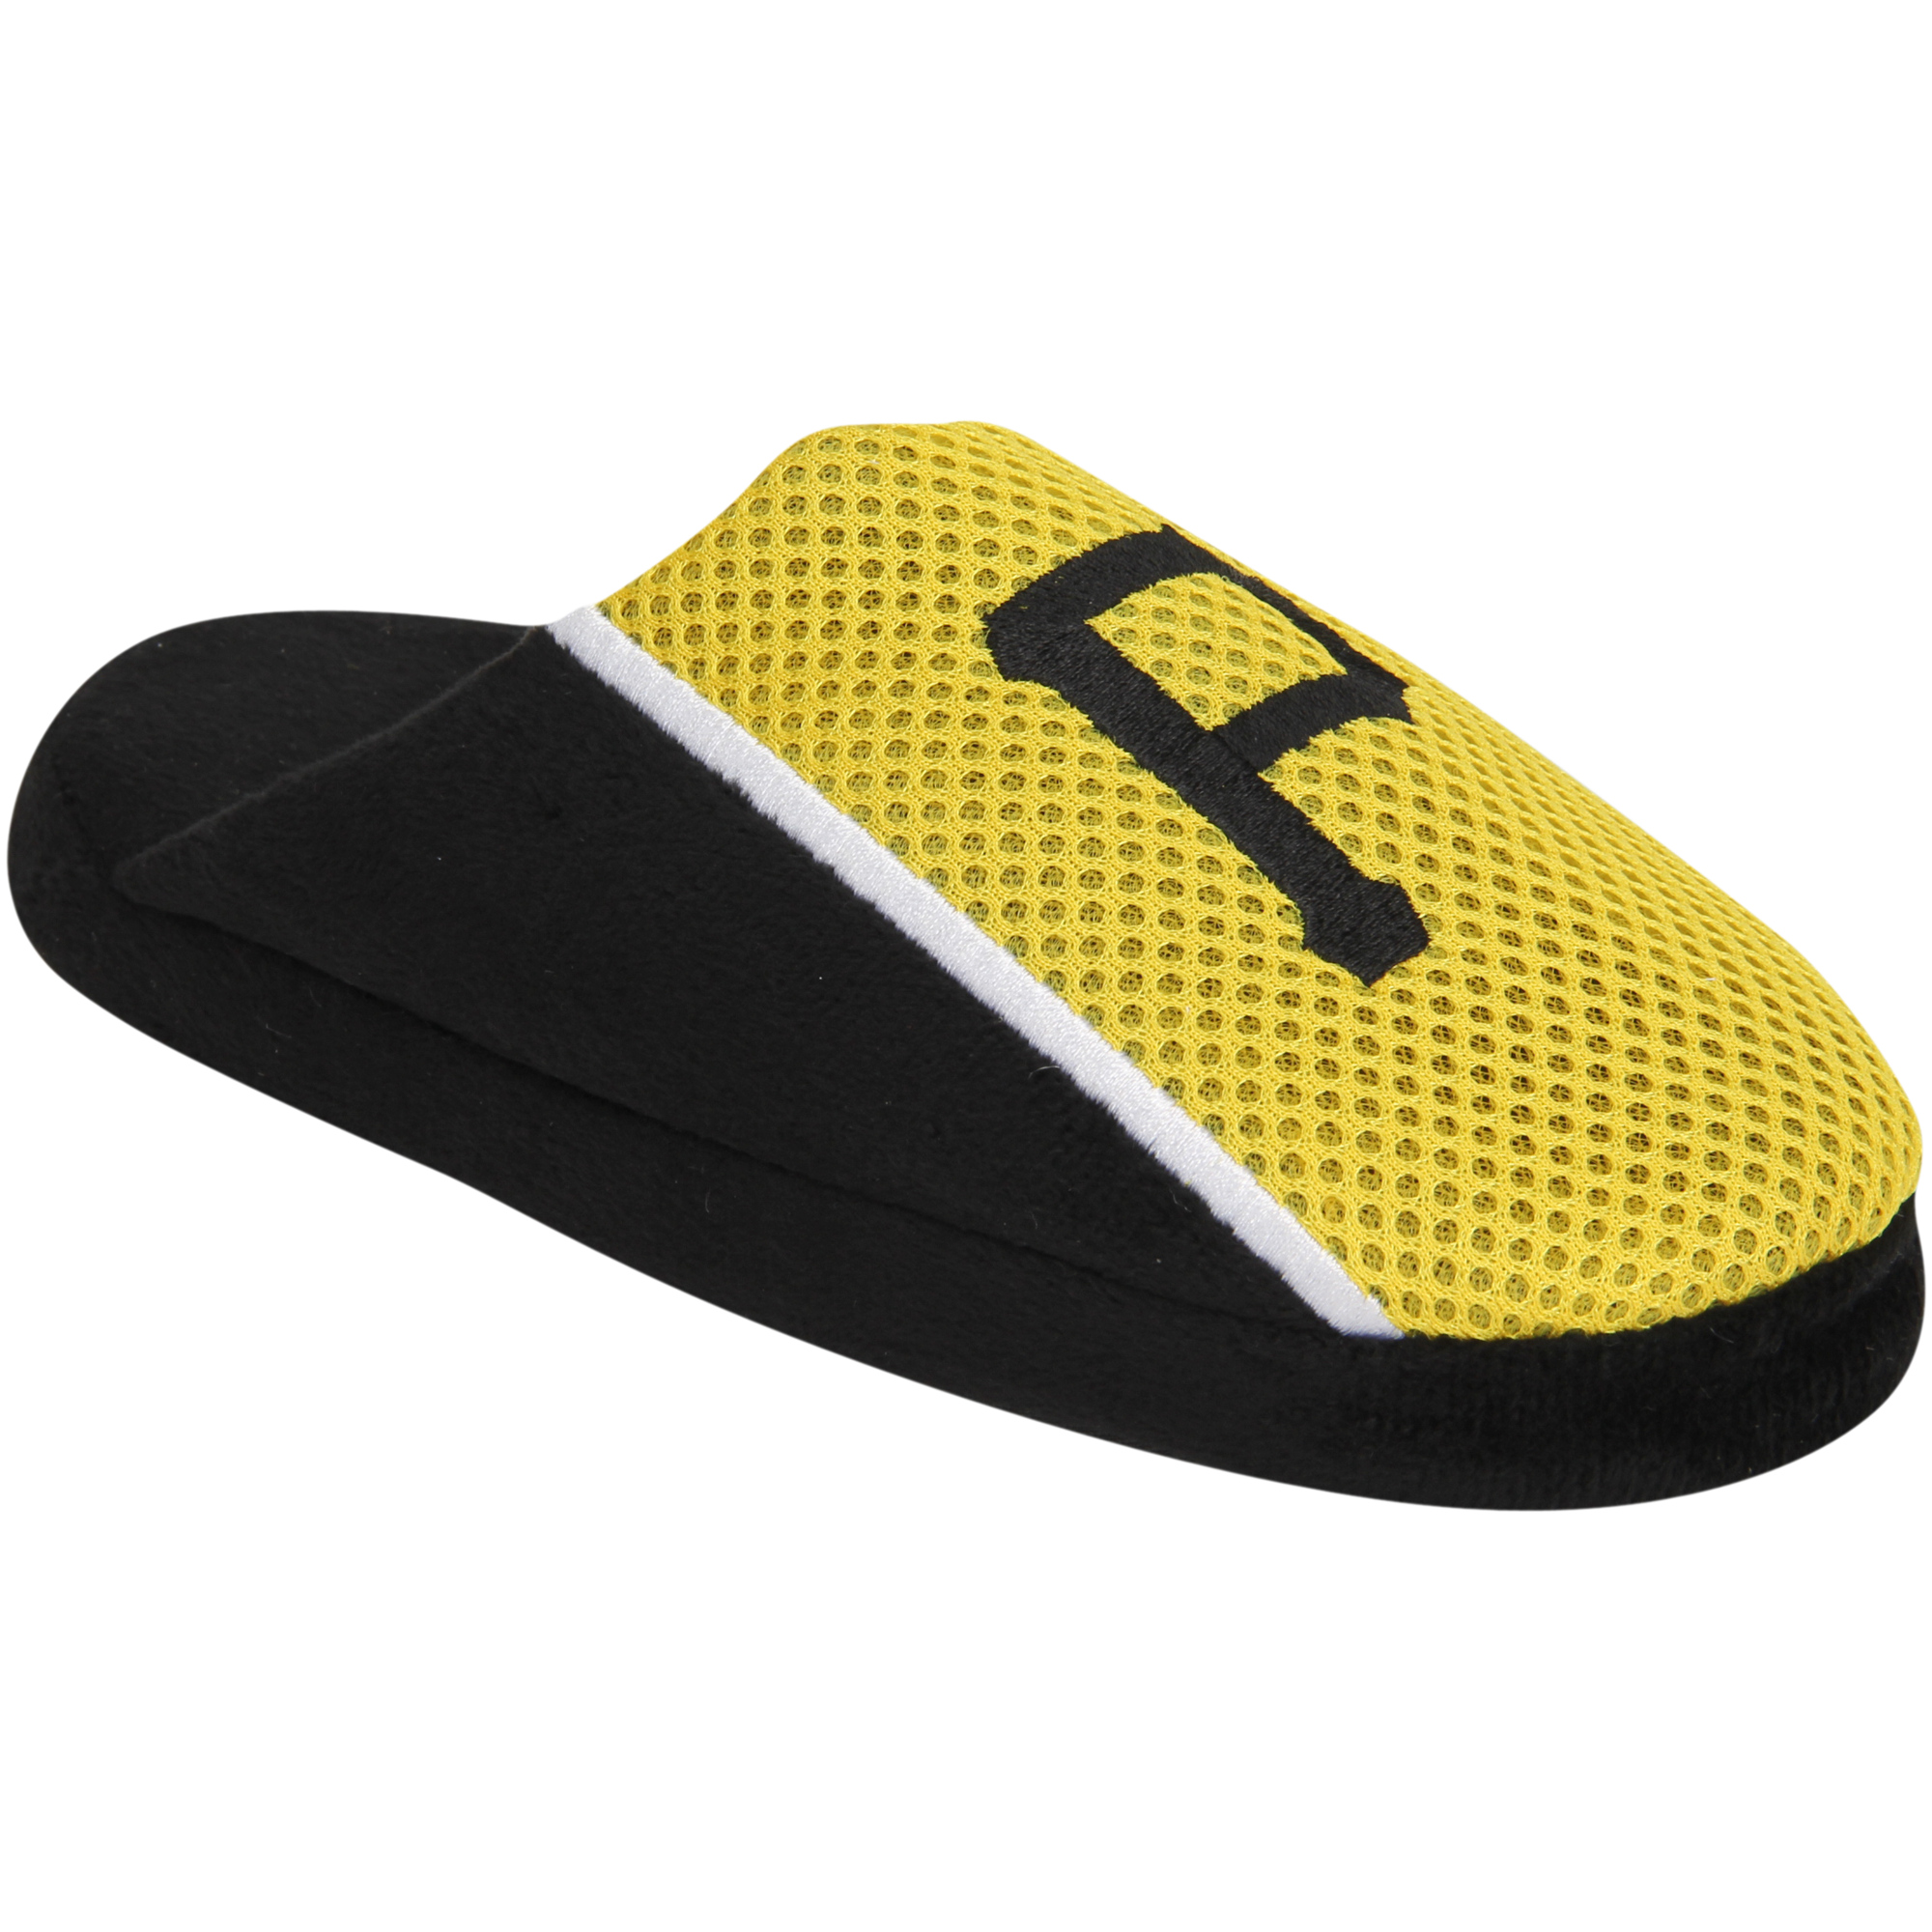 Pittsburgh Pirates Youth Jersey Slippers